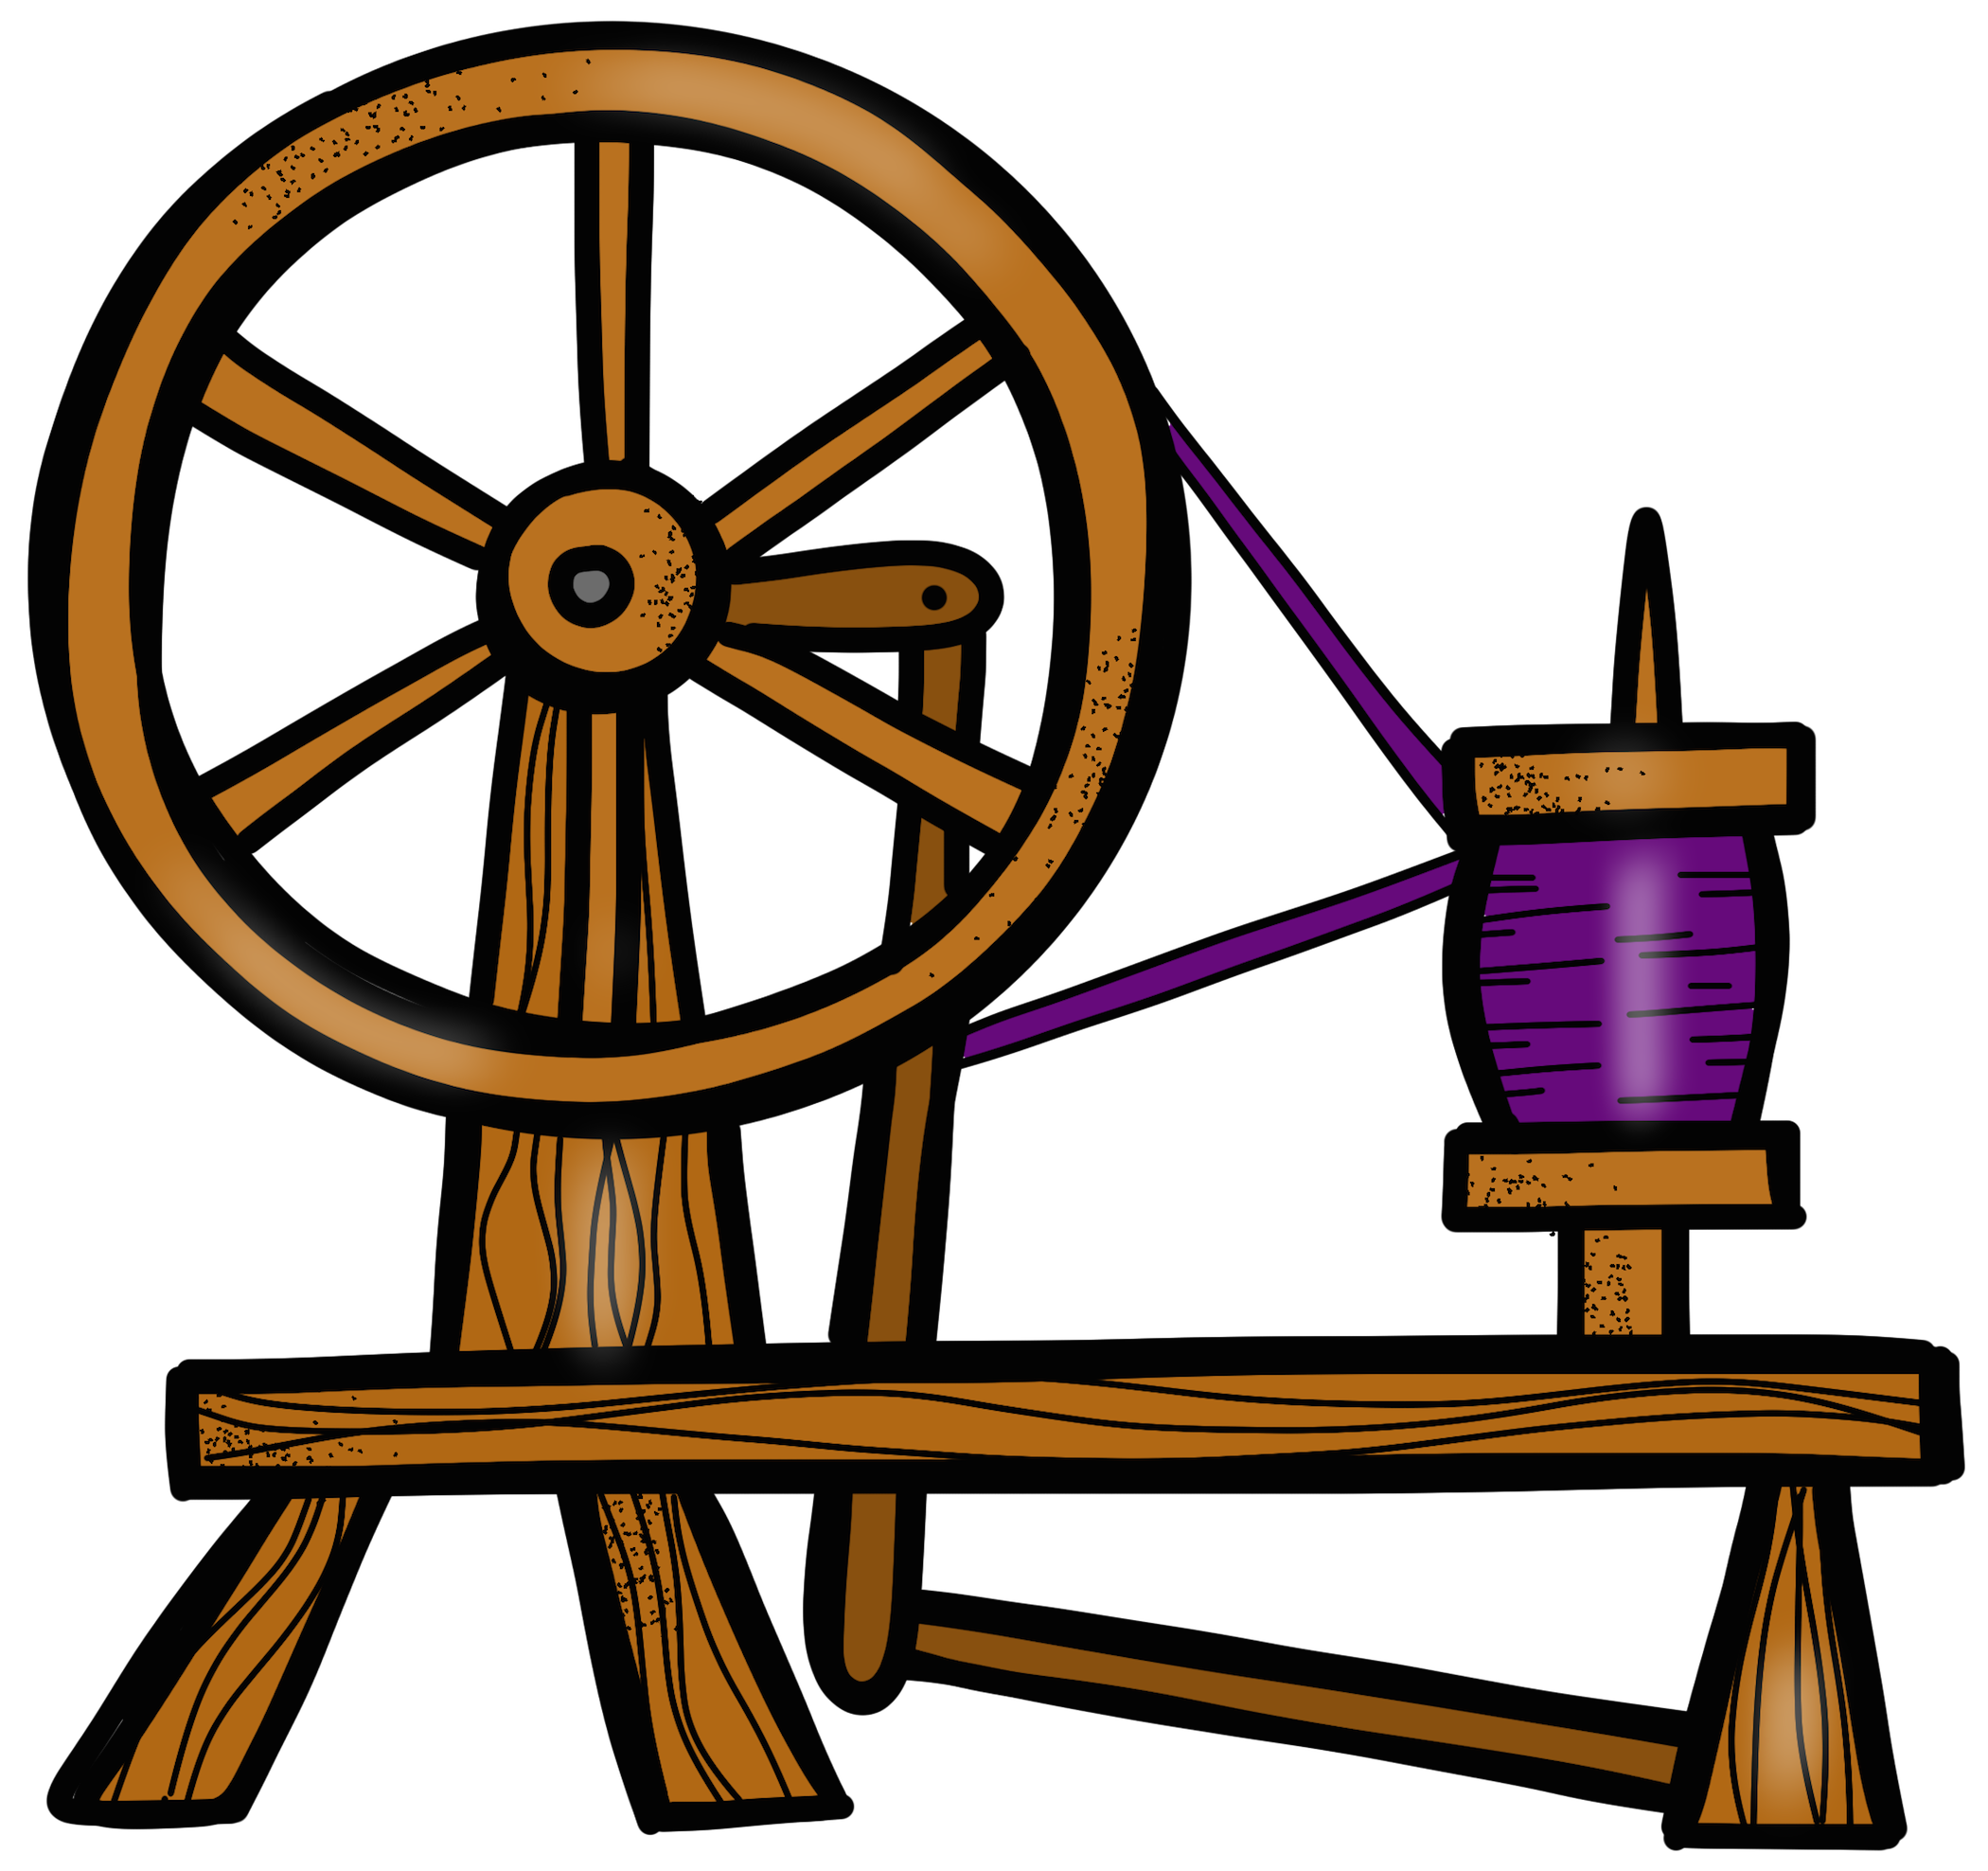 picture royalty free Spindle clip art transprent. Sleeping beauty spinning wheel clipart